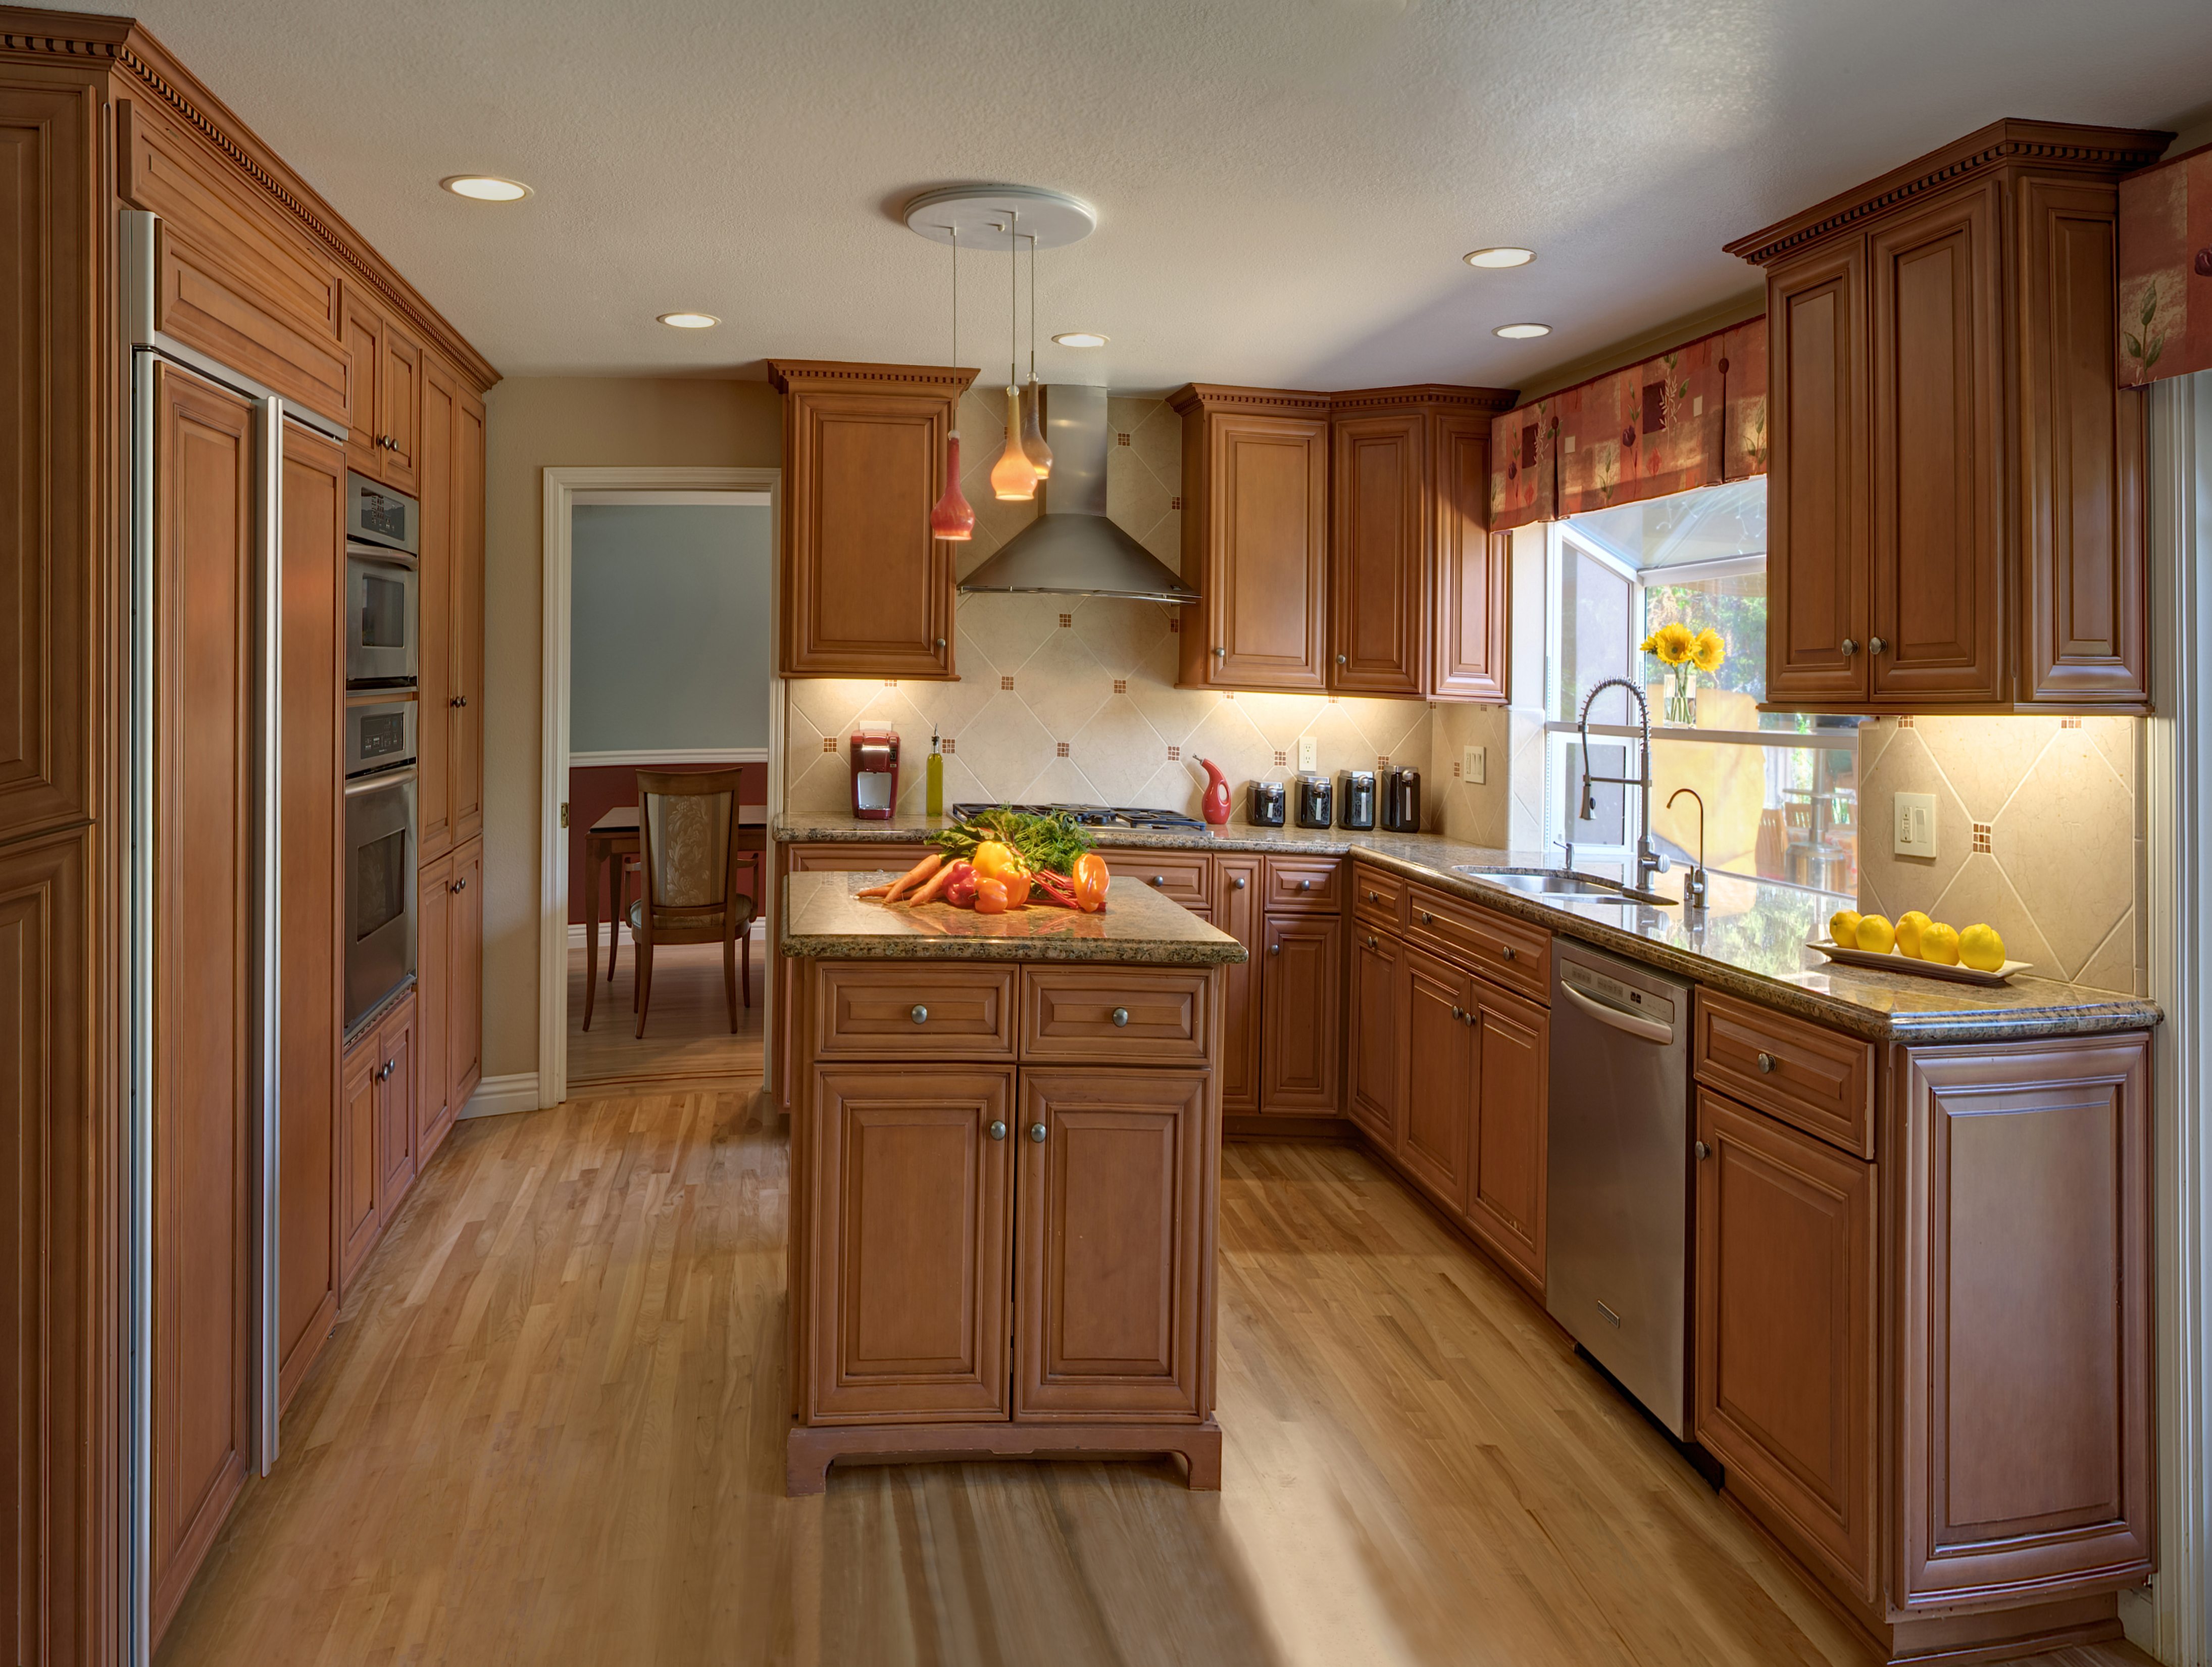 Saratoga kitchen is redesigned with new custom cabinets, counters, lighting, flooring and window coverings.